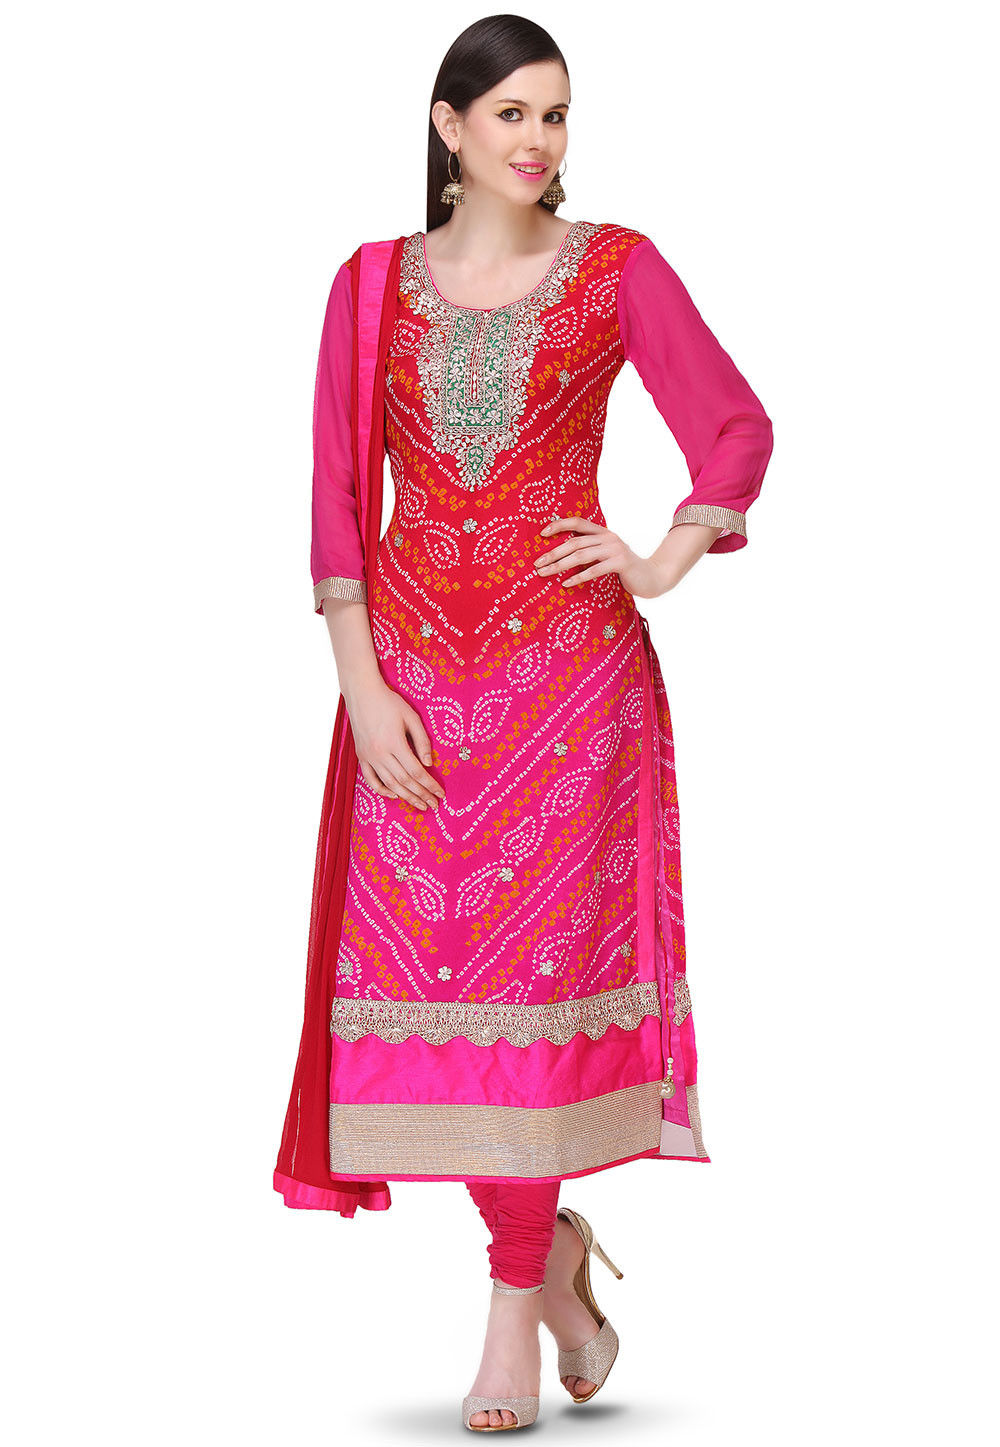 Bandhej Pure Chinon Crepe Straight Cut Suit in Red and Fuchsia